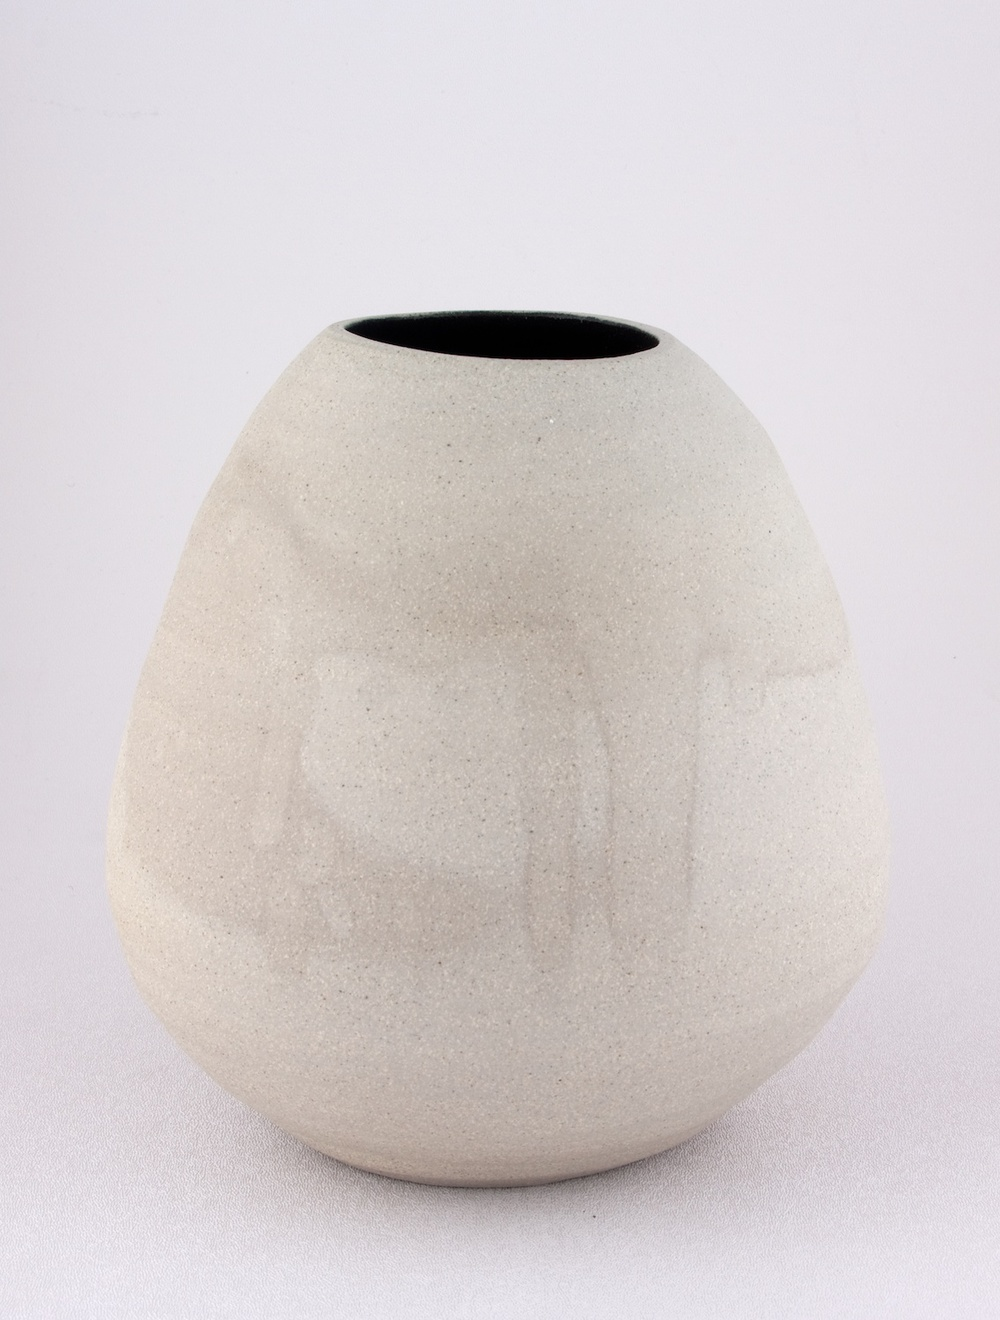 "Shio Kusaka Untitled (grey and black) 2009 Stoneware 8"" x 8"" K062"